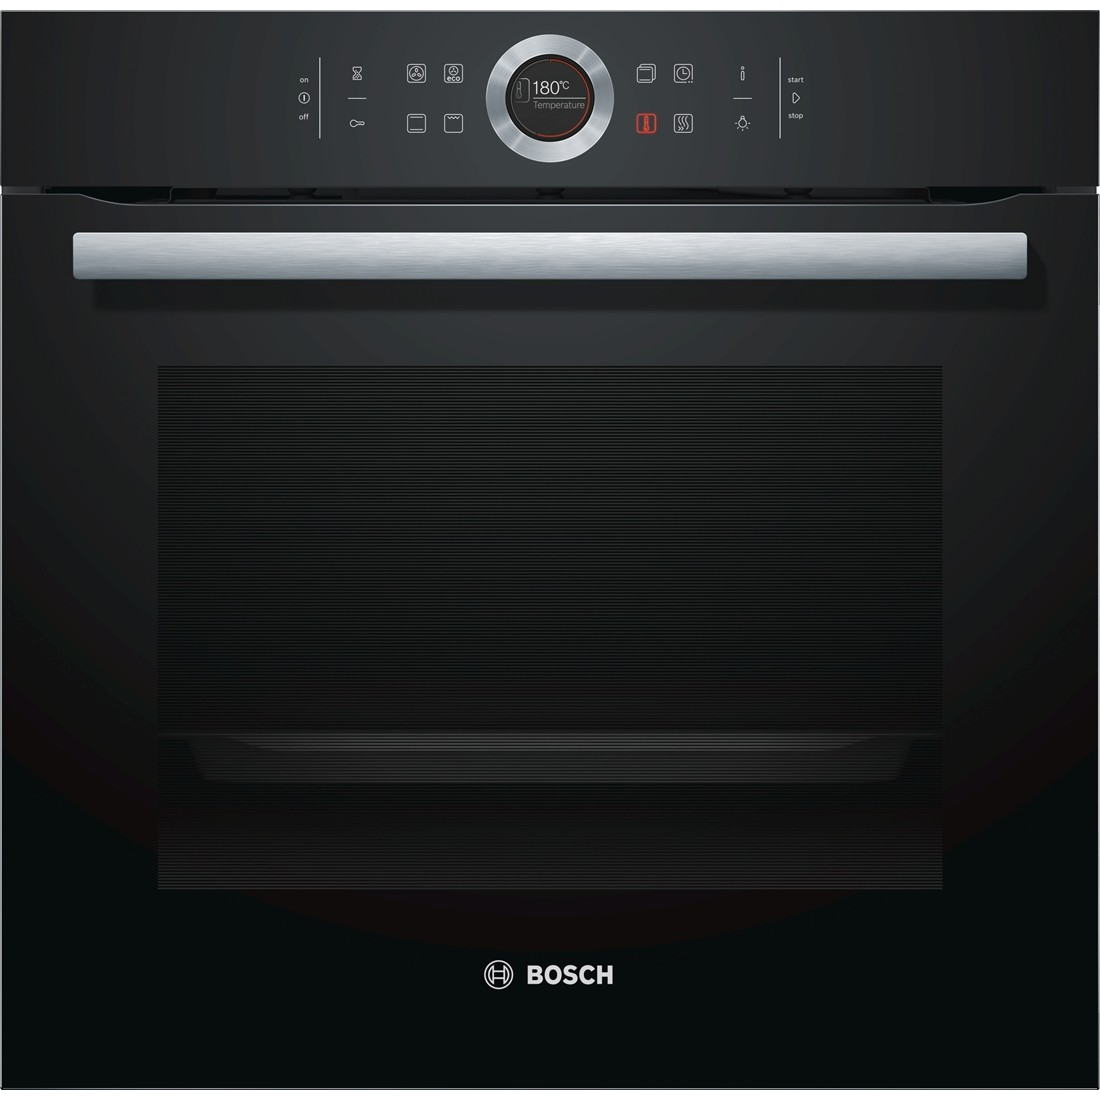 Cuptor electric Bosch HBG633NB1, Multifunctional